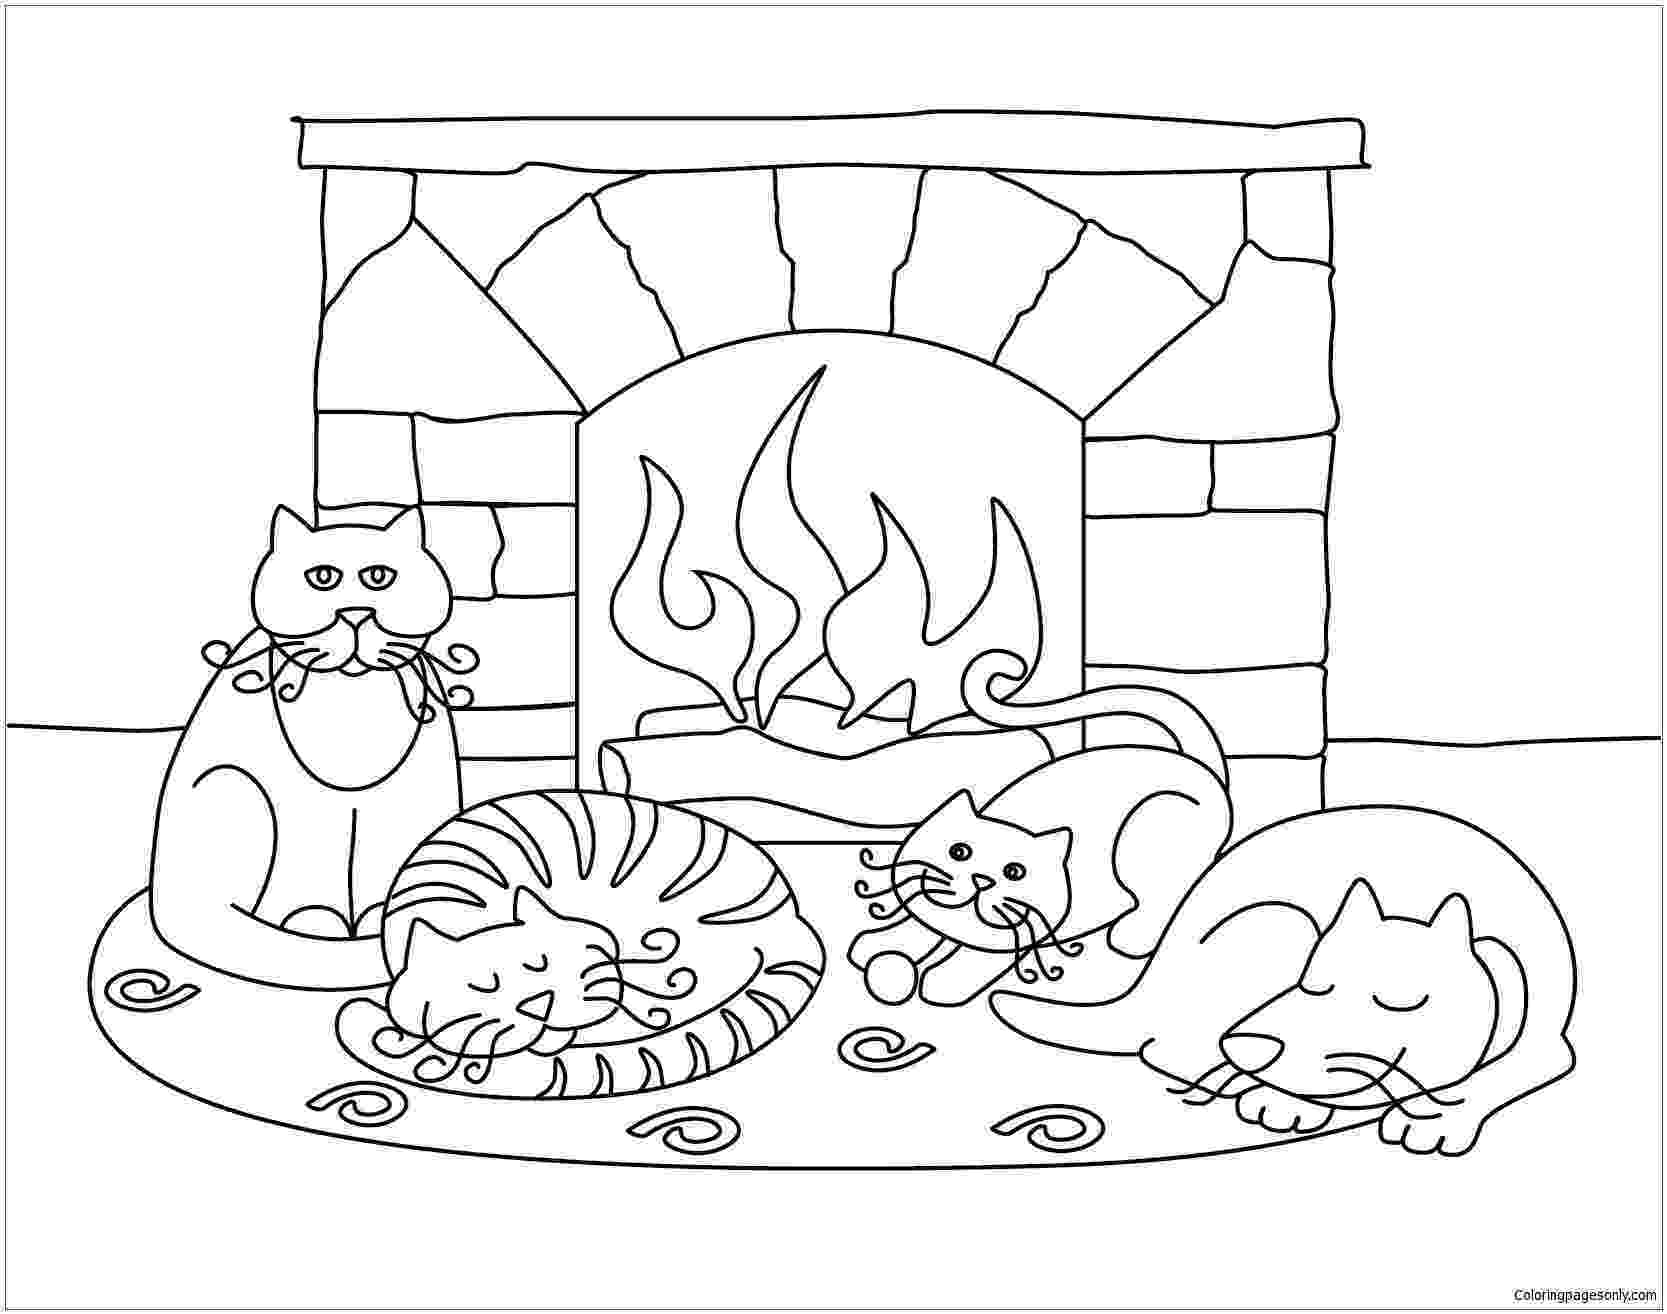 winter scene coloring pages winter coloring pages for adults best coloring pages for winter pages scene coloring